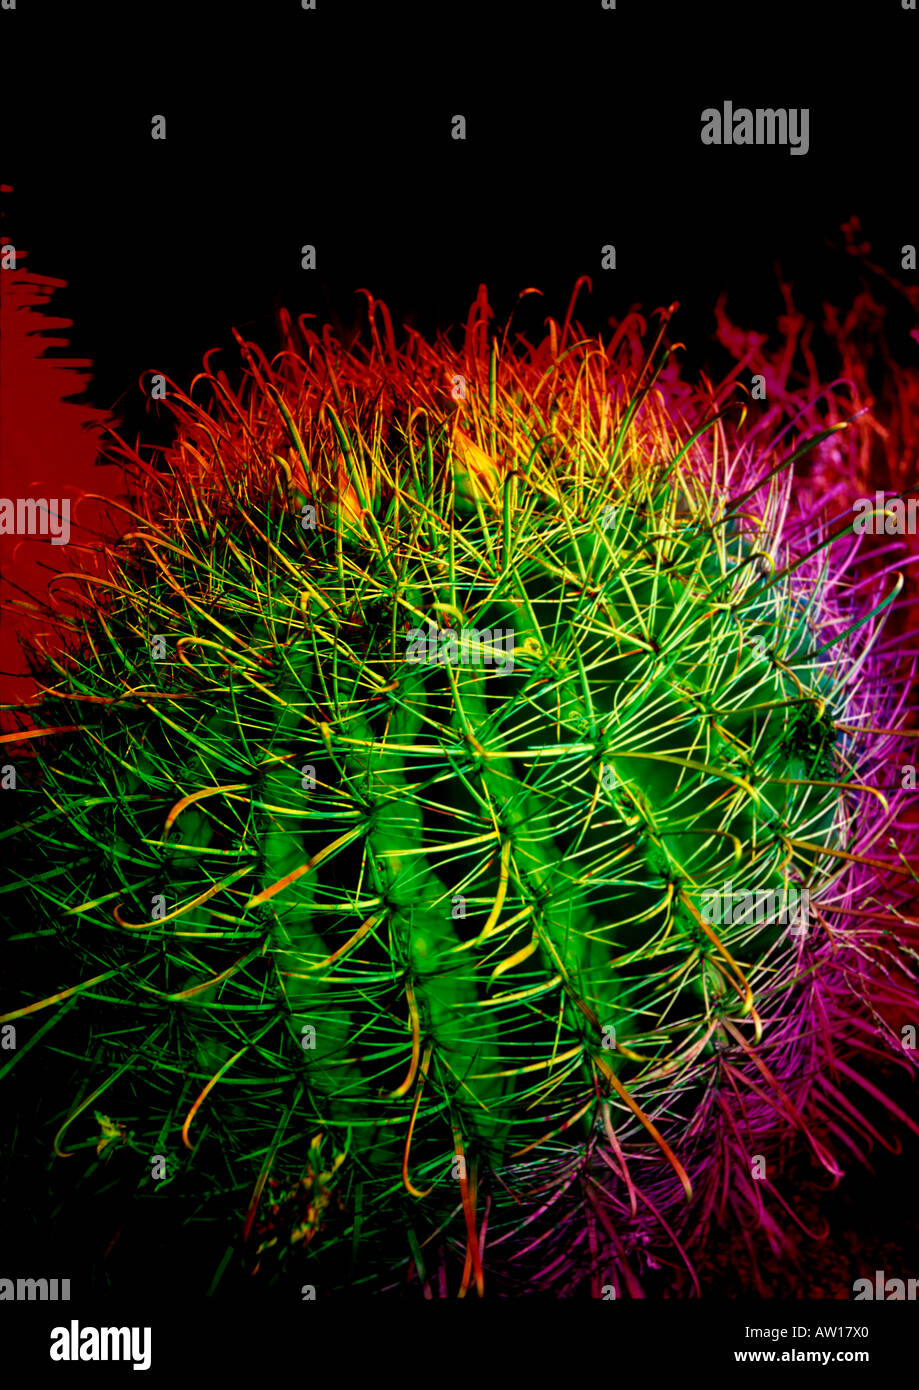 A Barrel Cactus light painted in red and green and yellow at night. - Stock Image